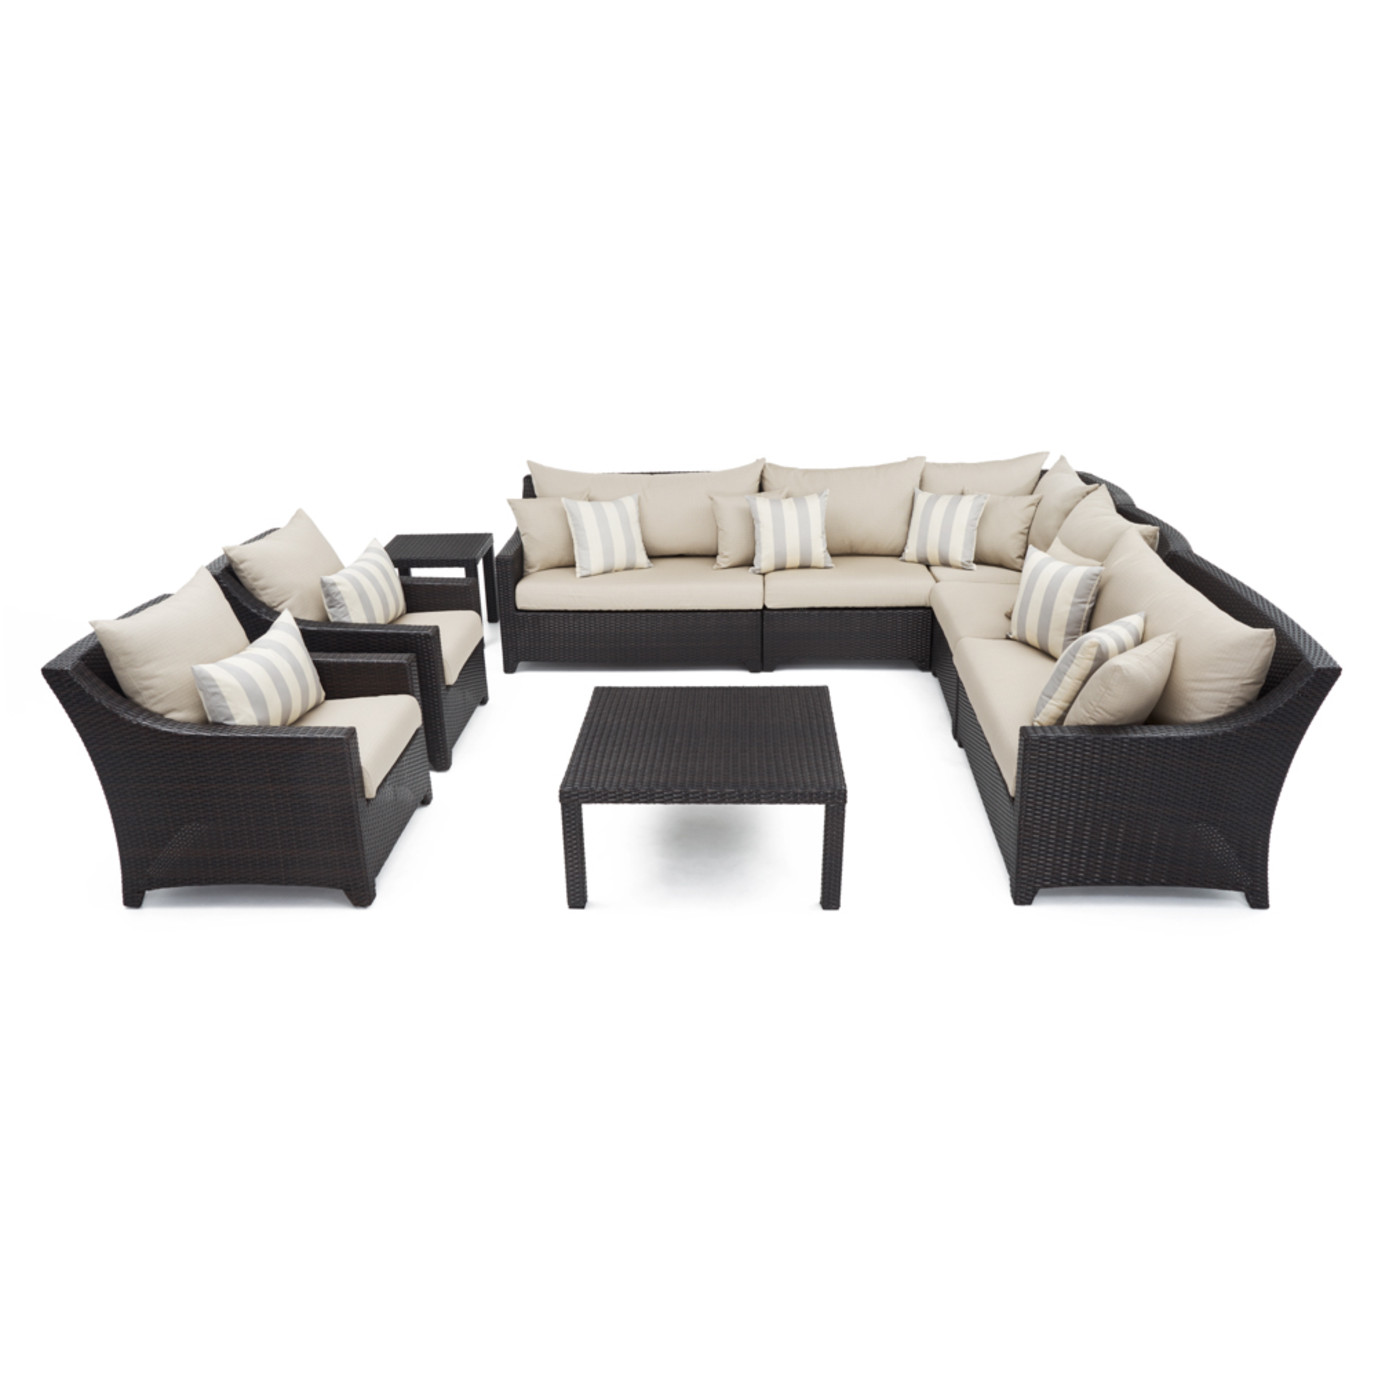 Deco™ 9 Piece Sectional and Club Set - Slate Gray